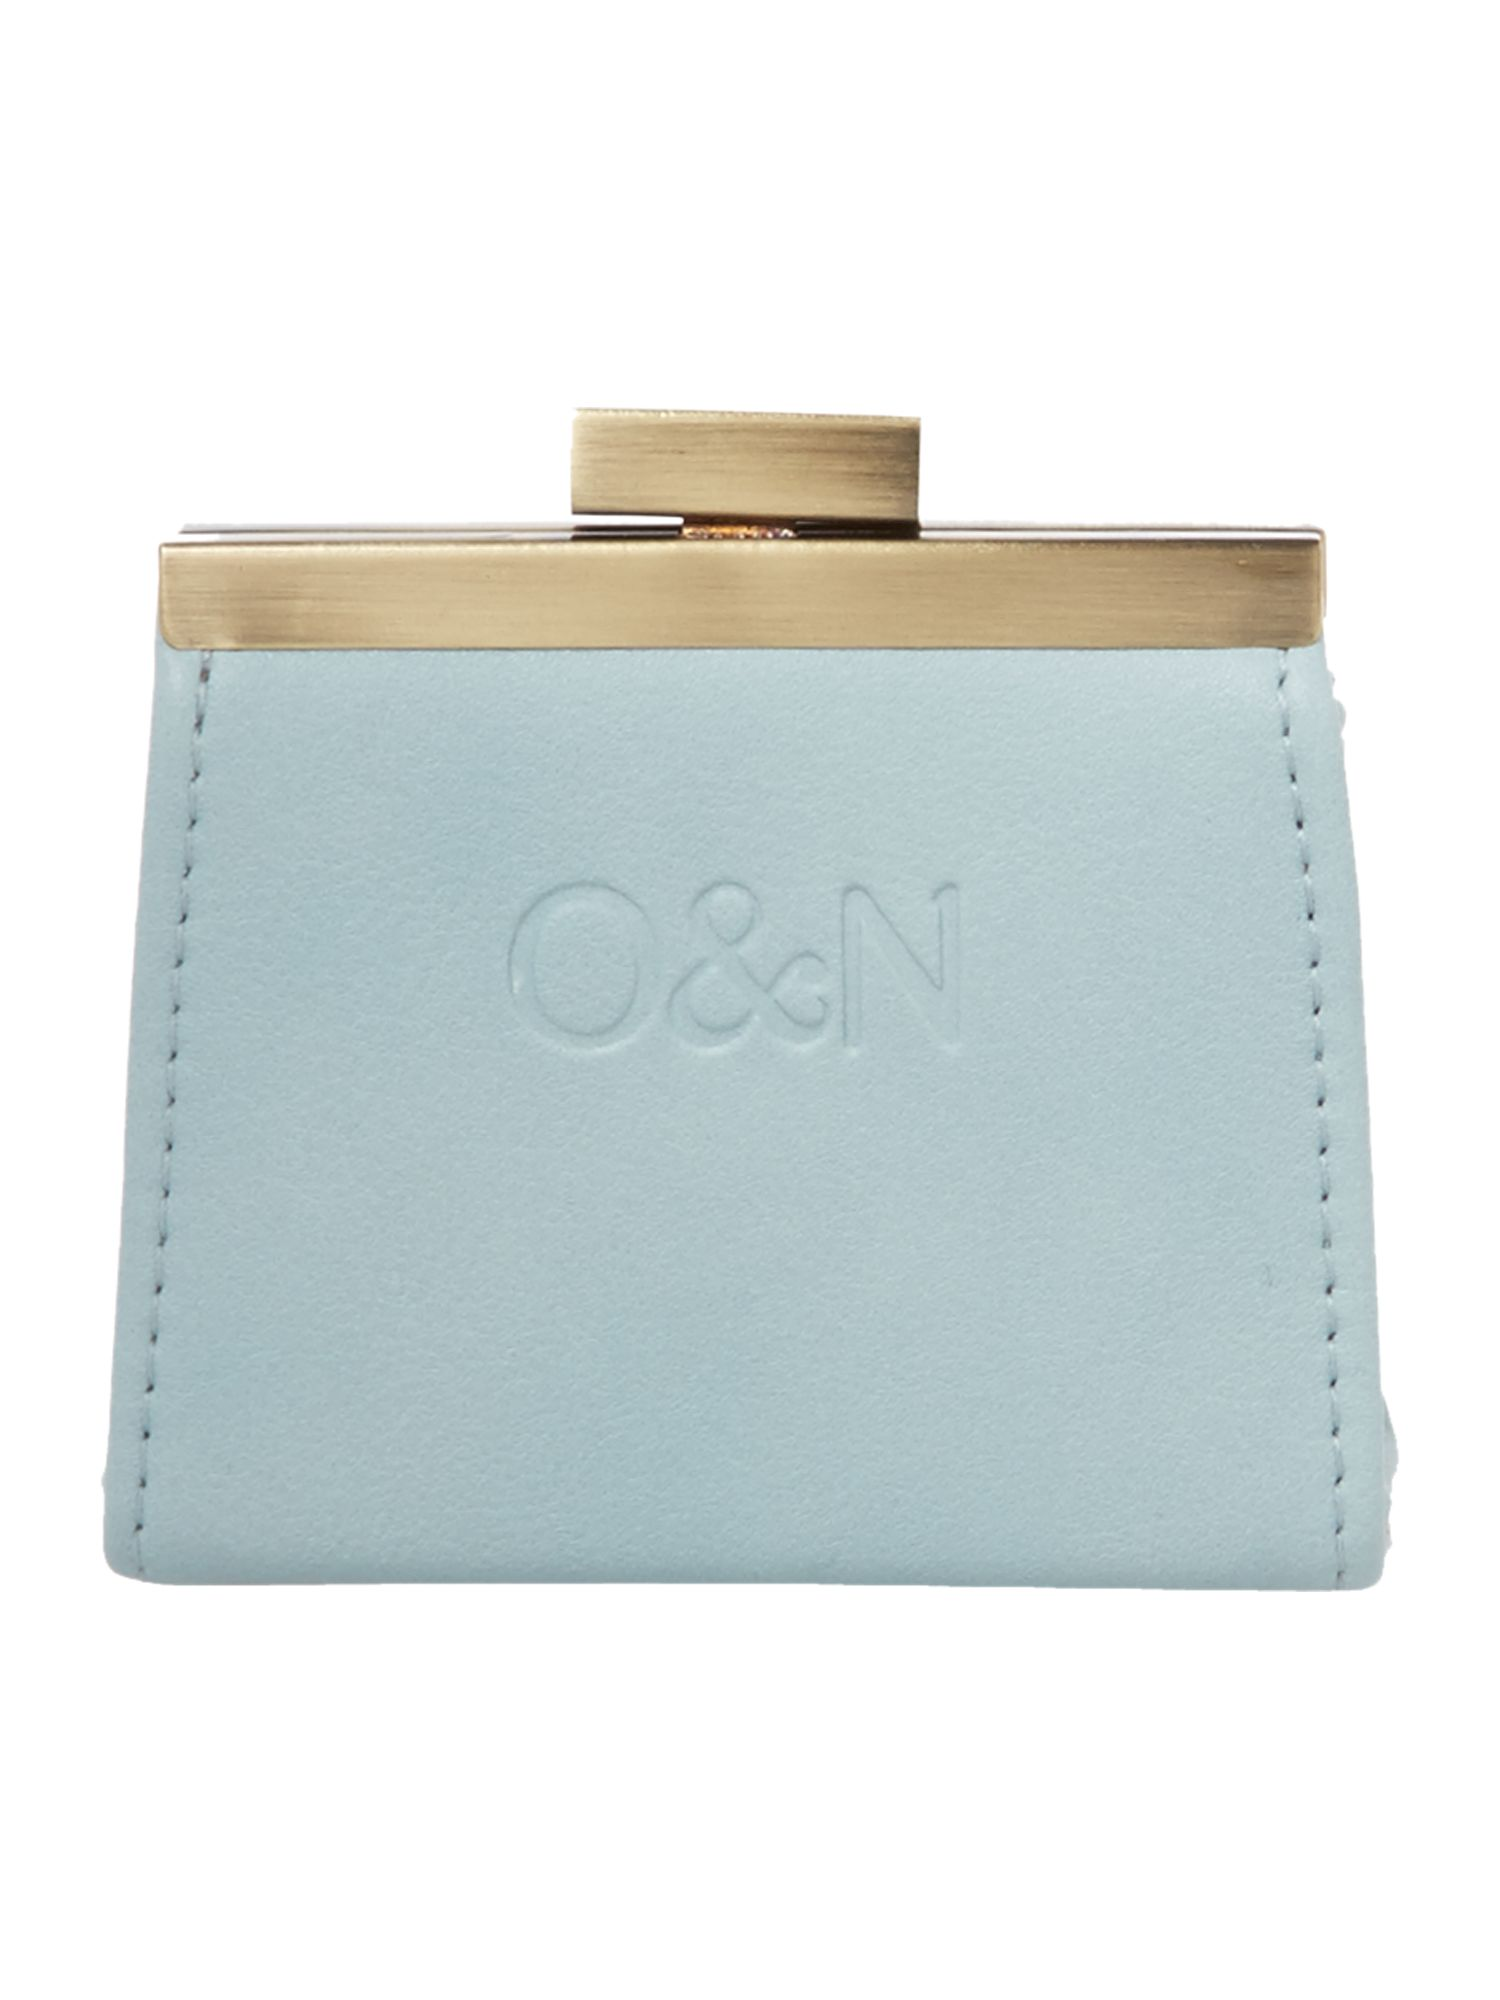 Gretal blue frame purse